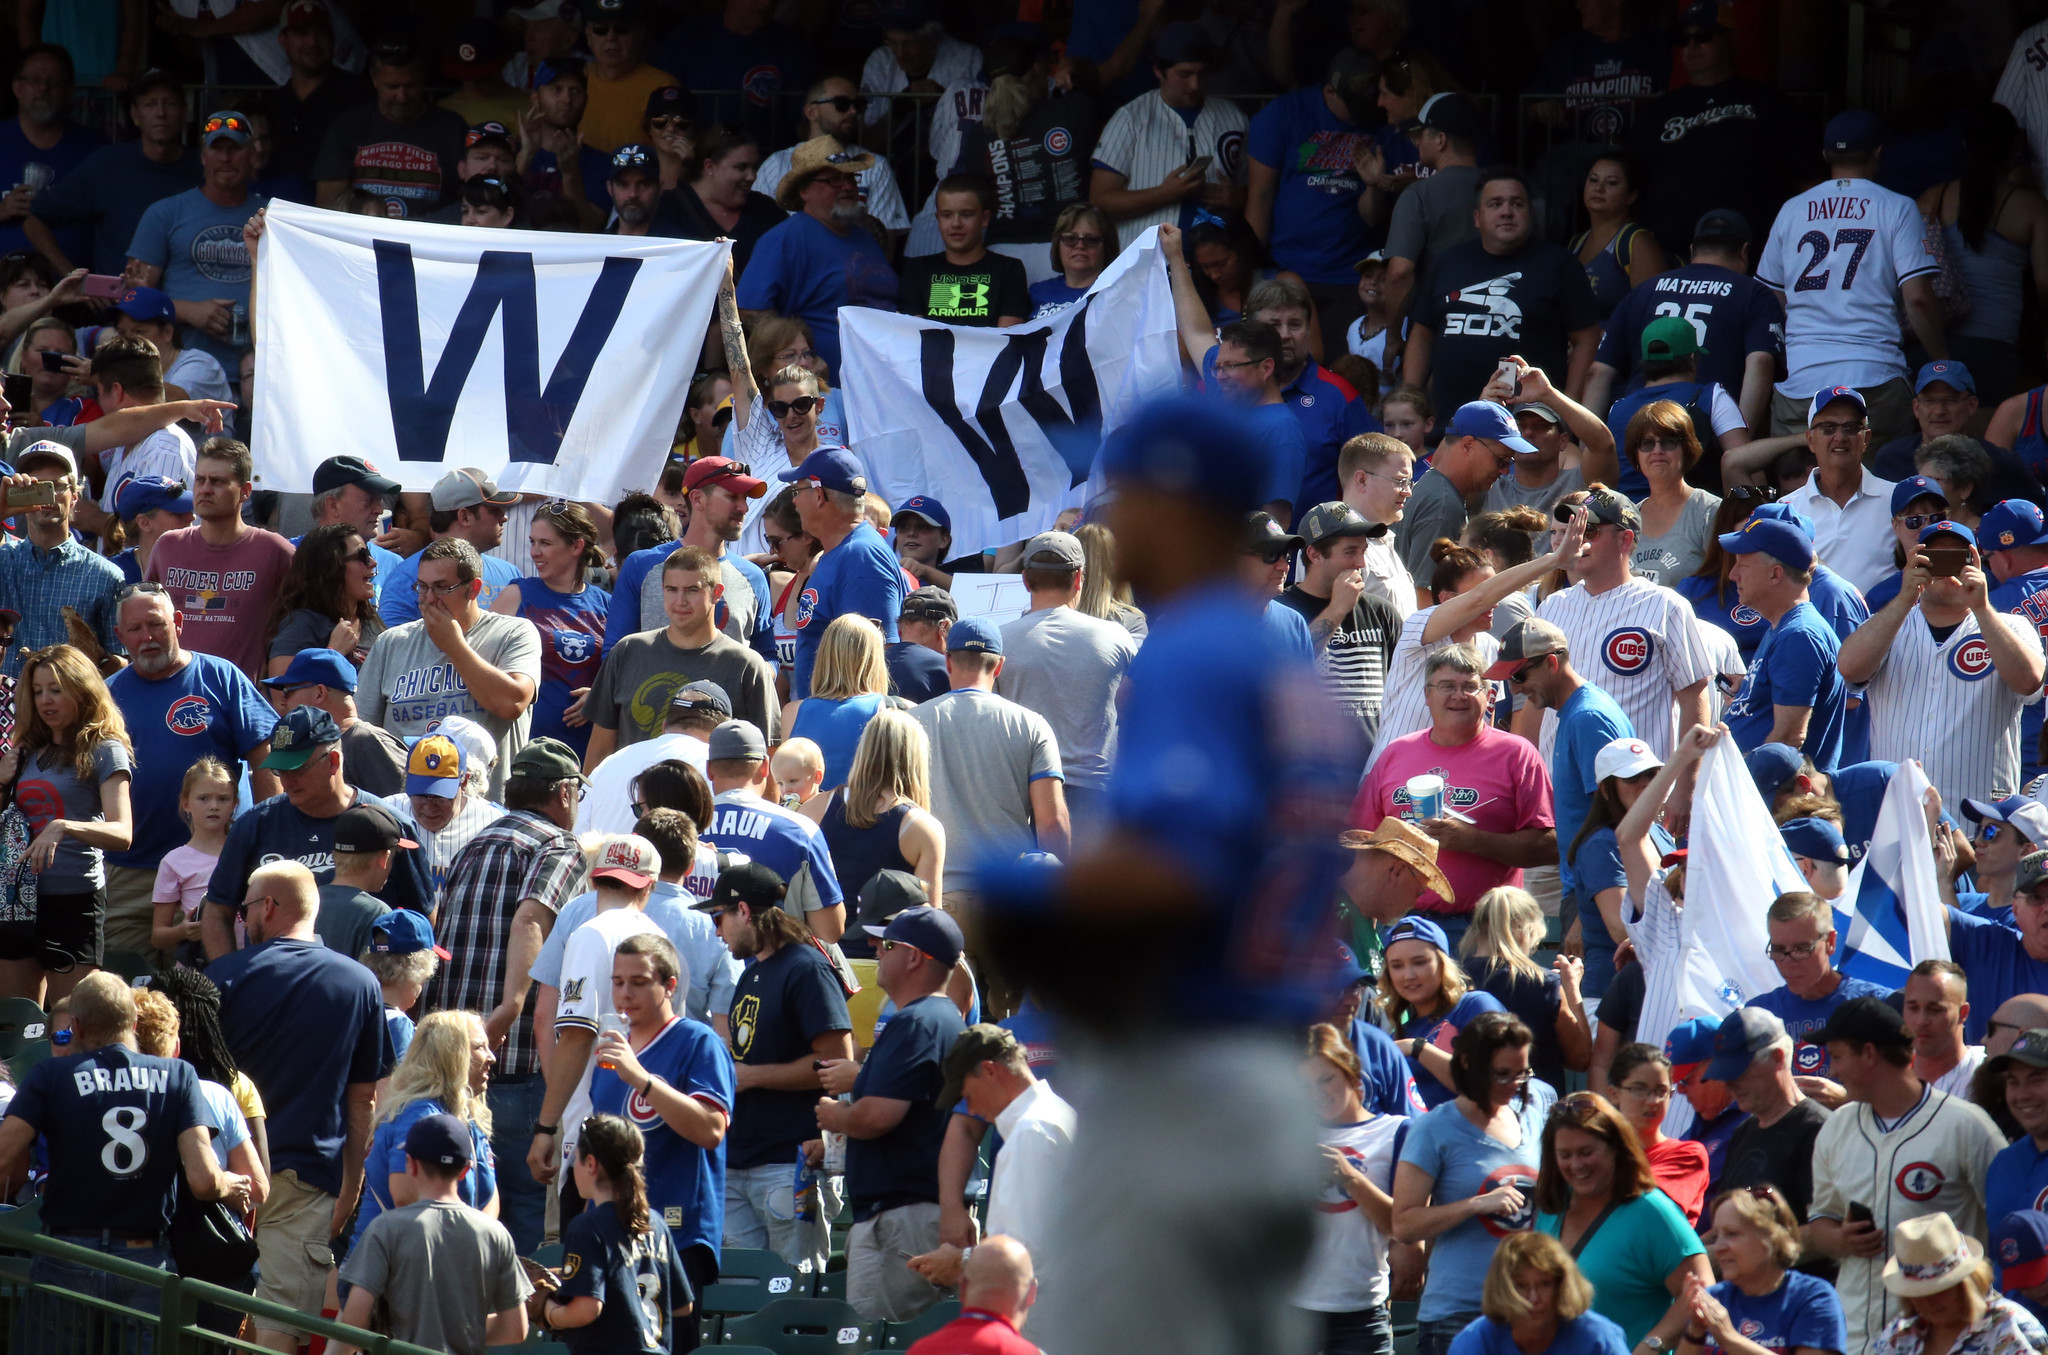 Ct-cubs-series-brewers-spt-0921-20170920